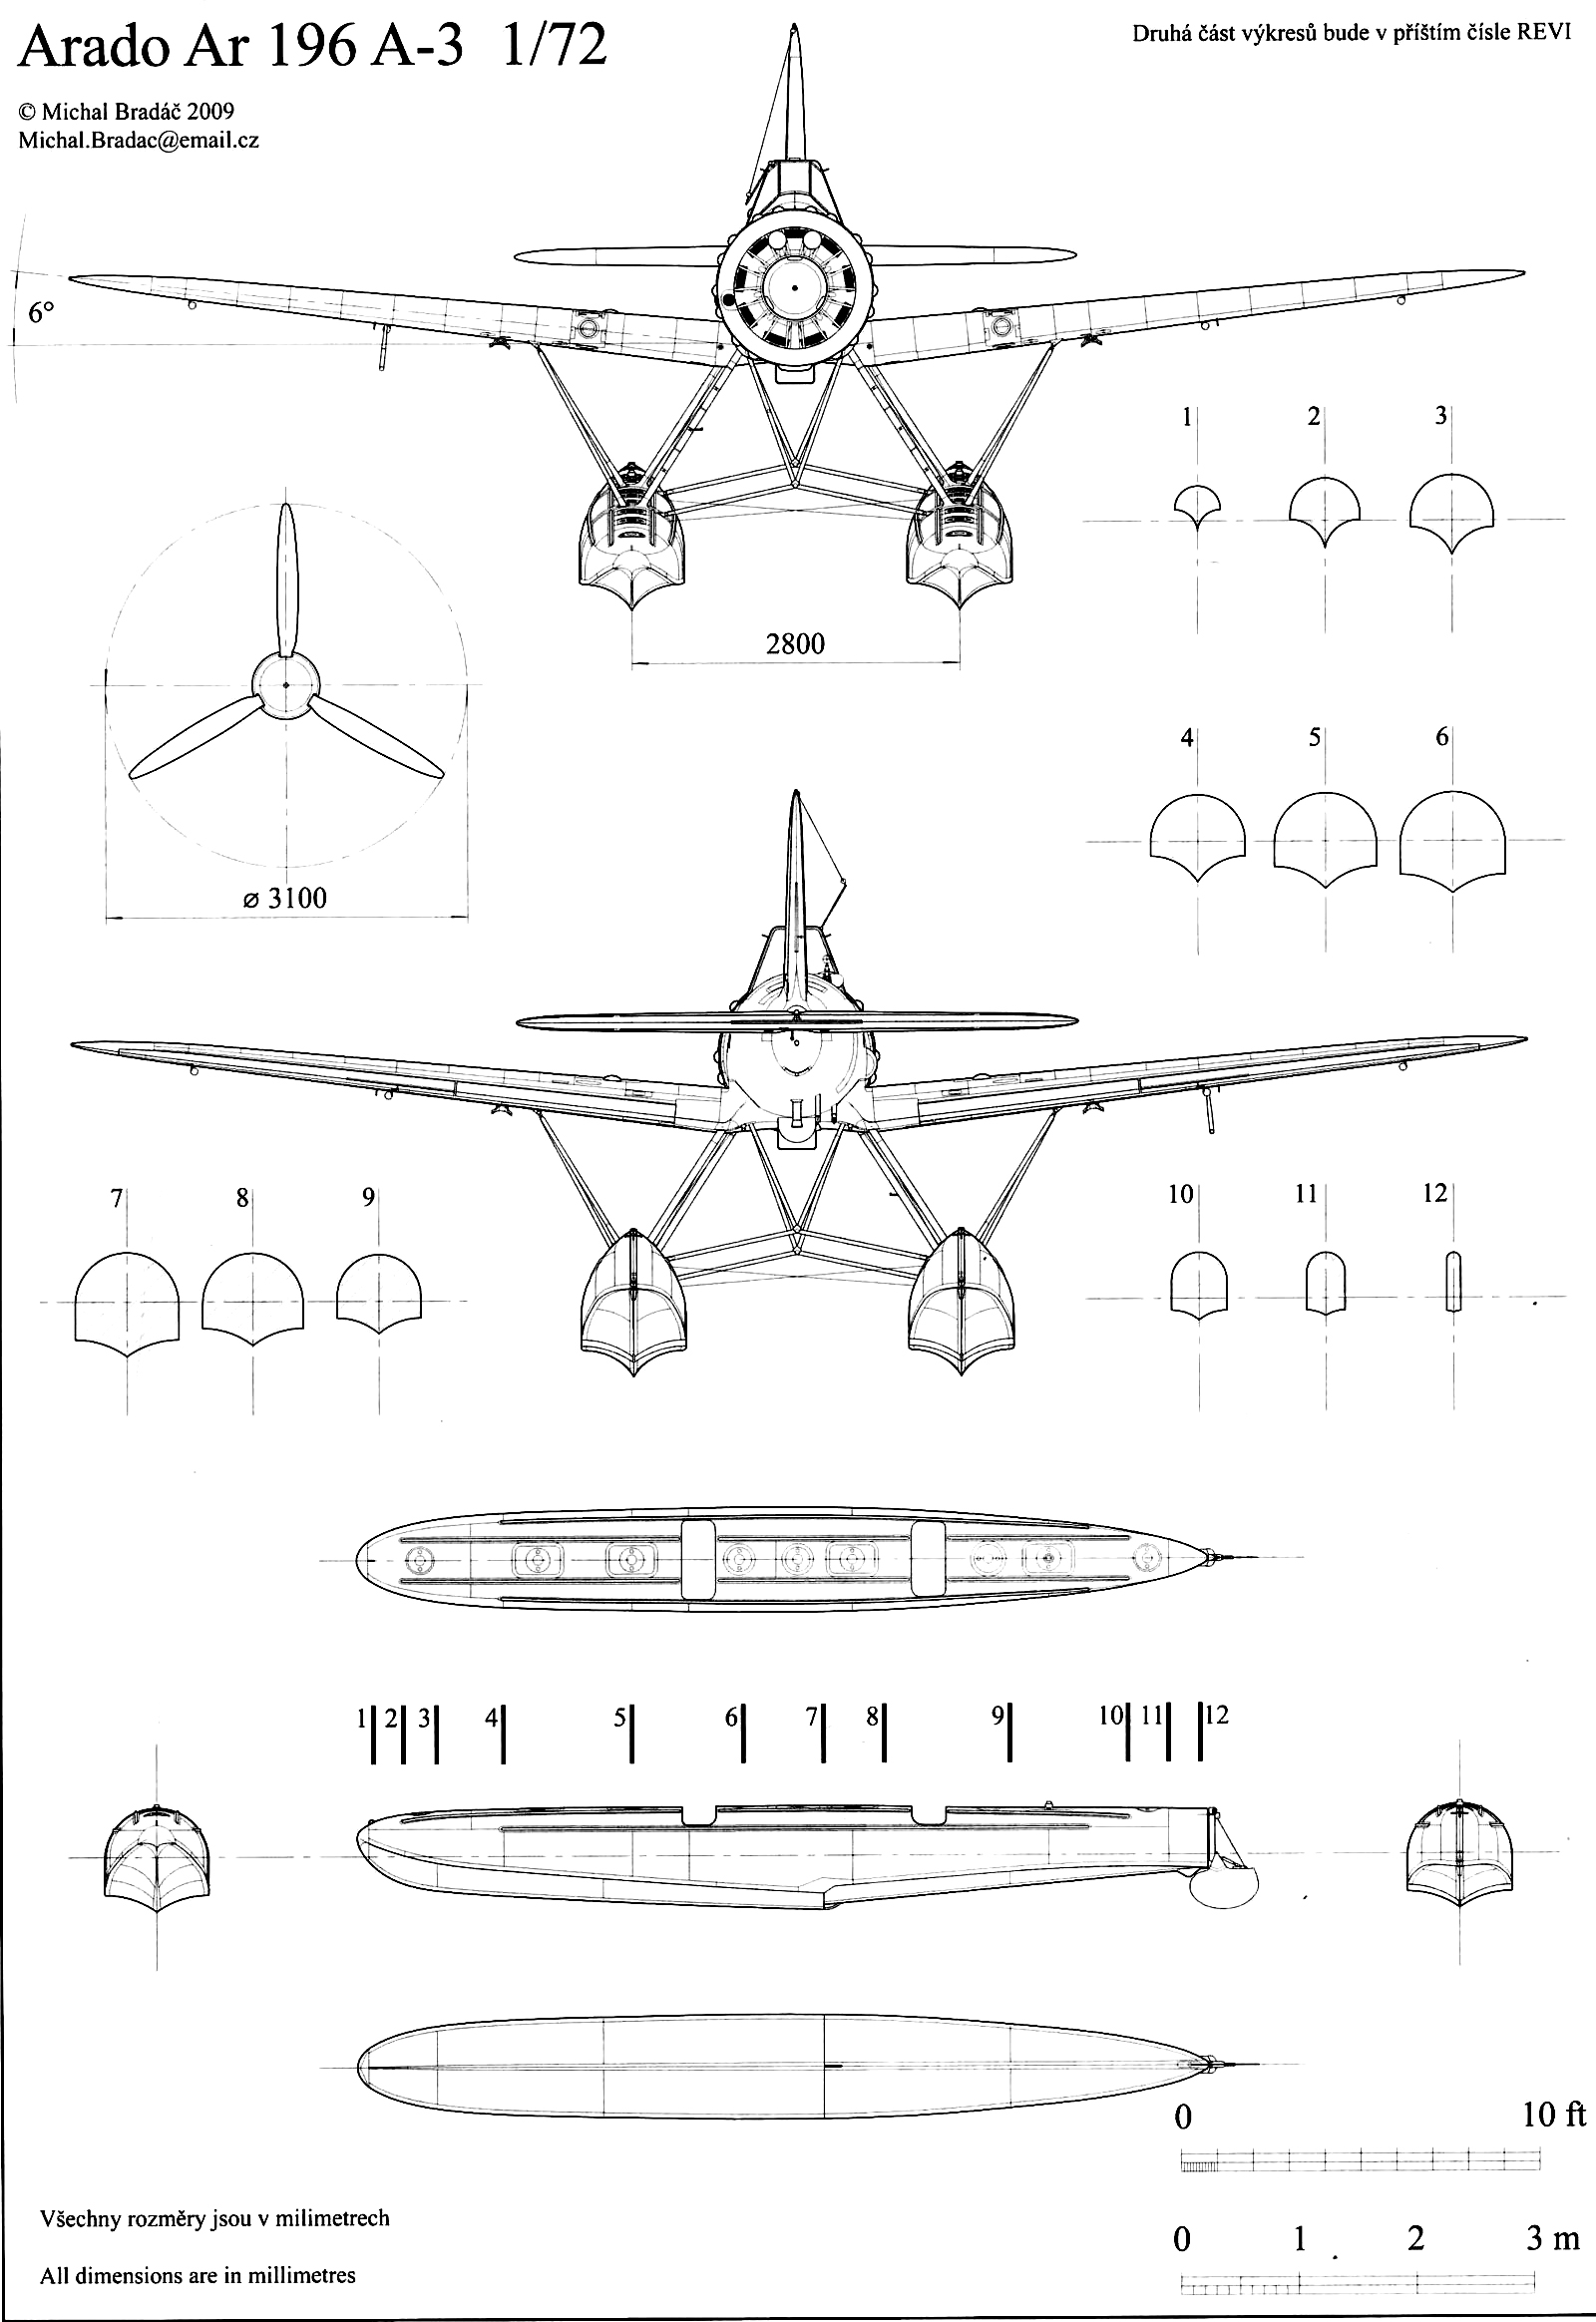 aircraft technical drawing of arado ar 196a3 in 172 scale